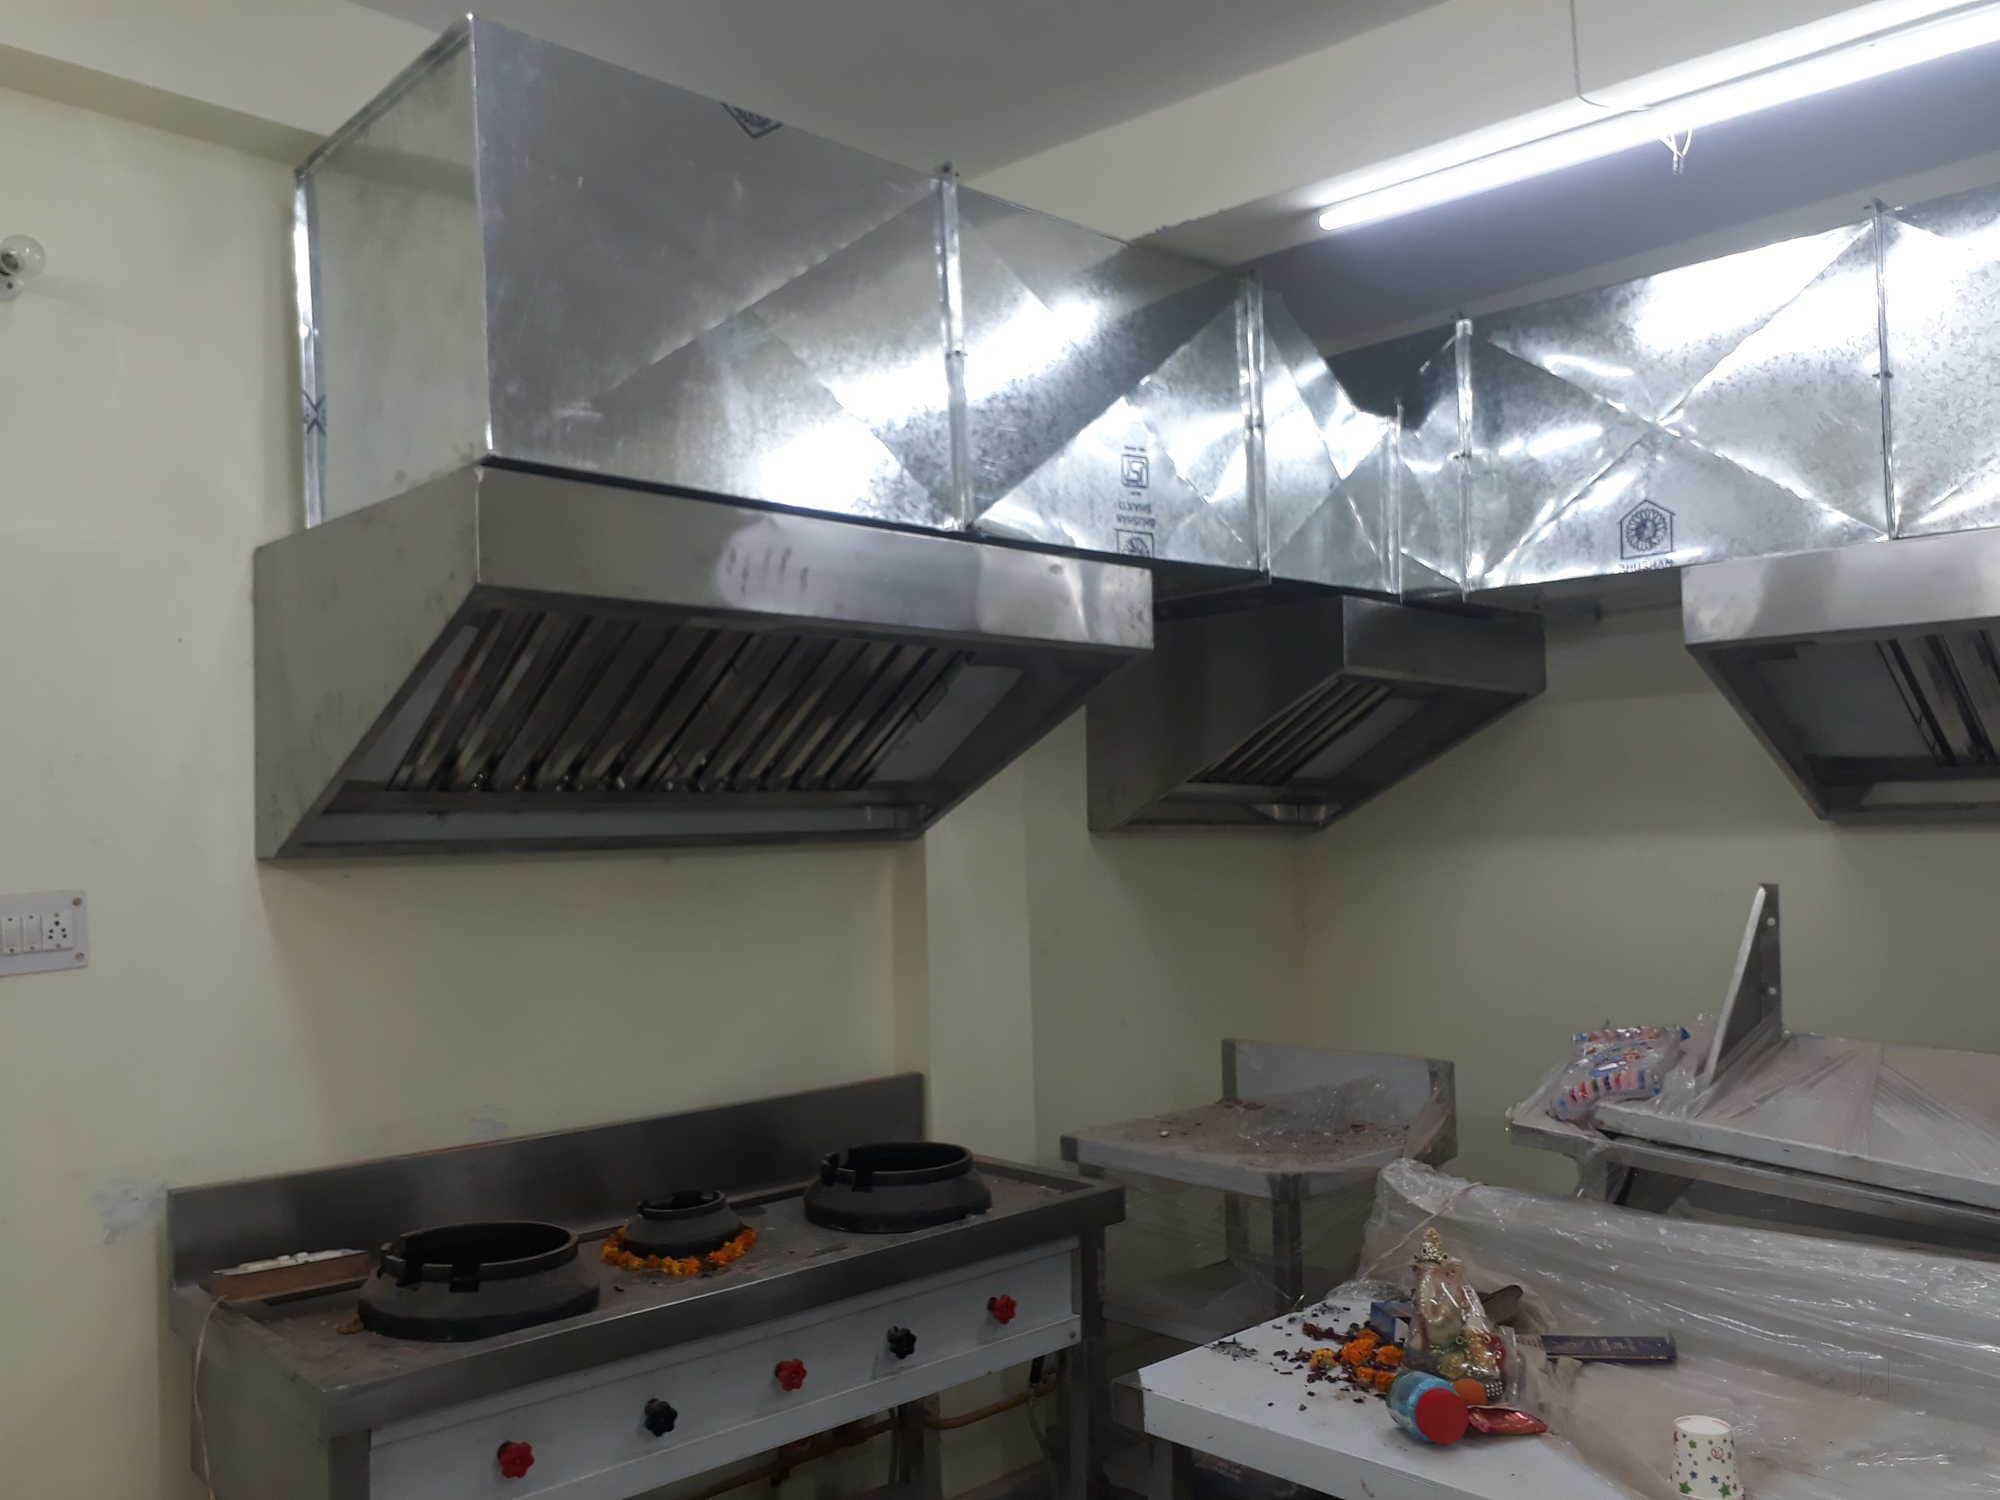 Top Commercial Chimney Cleaning Services In Gurgaon Sector 43 Best Commercial Kitchen Exhaust Hood Cleaning Services Gurgaon Justdial